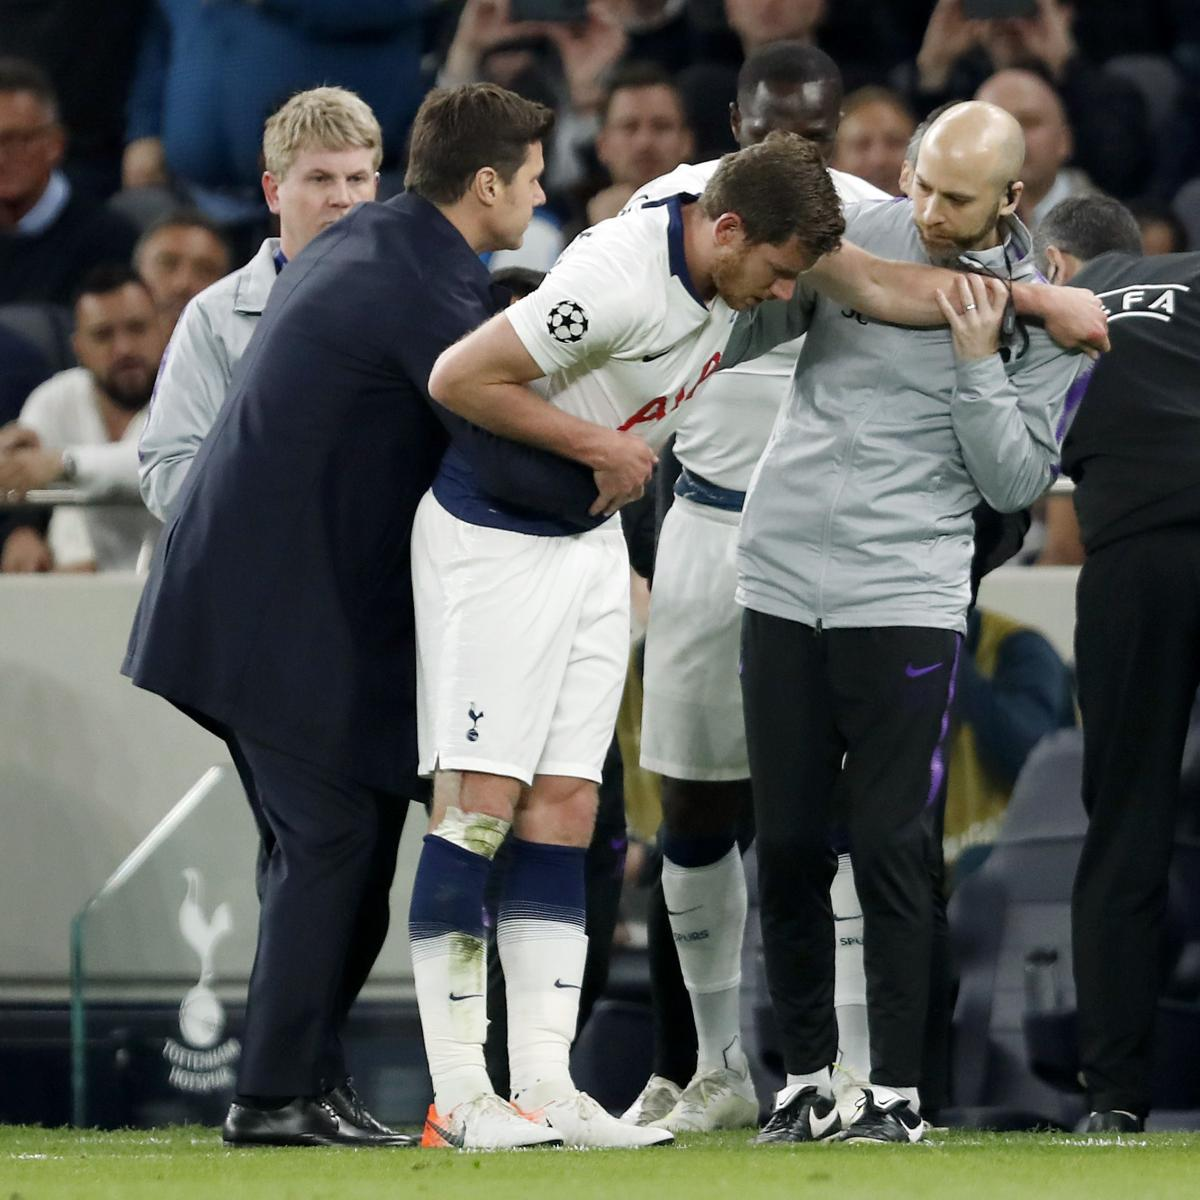 Tottenham Vs Ajax Tickets Away End: Tottenham's Jan Vertonghen Suffered Nose Injury, Not